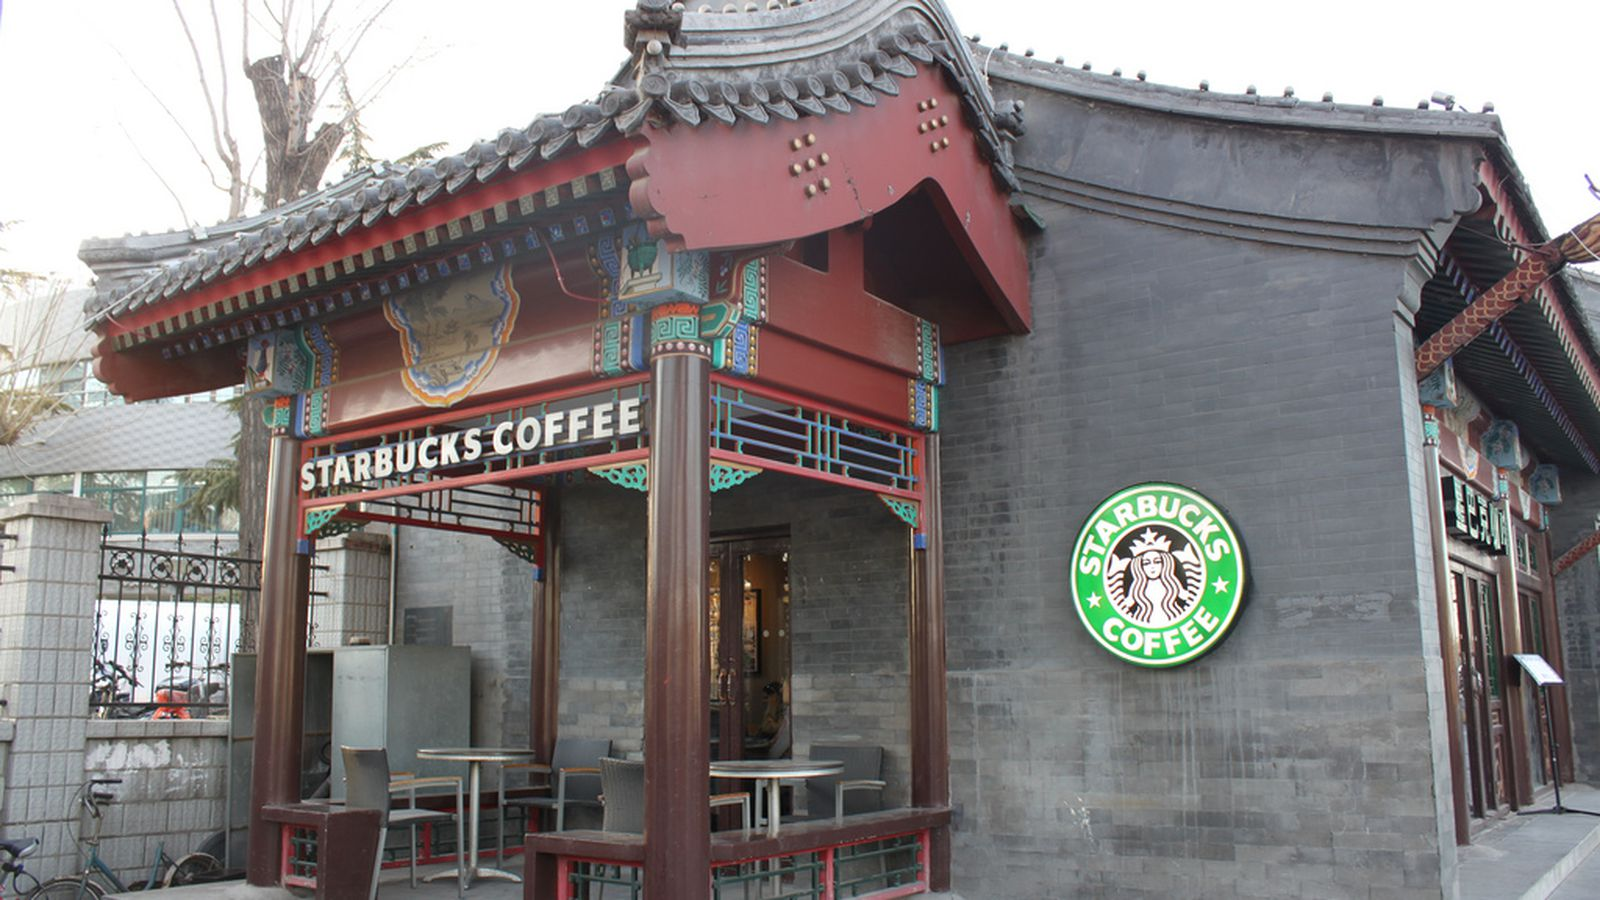 starbucks strategy in china Starbucks' brand promotion strategy is still unique, unconventional and does not follow tried and tested advertising models one good example is its expansion into china - how did it manage to launch so successfully in a culture of primarily tea drinkers.